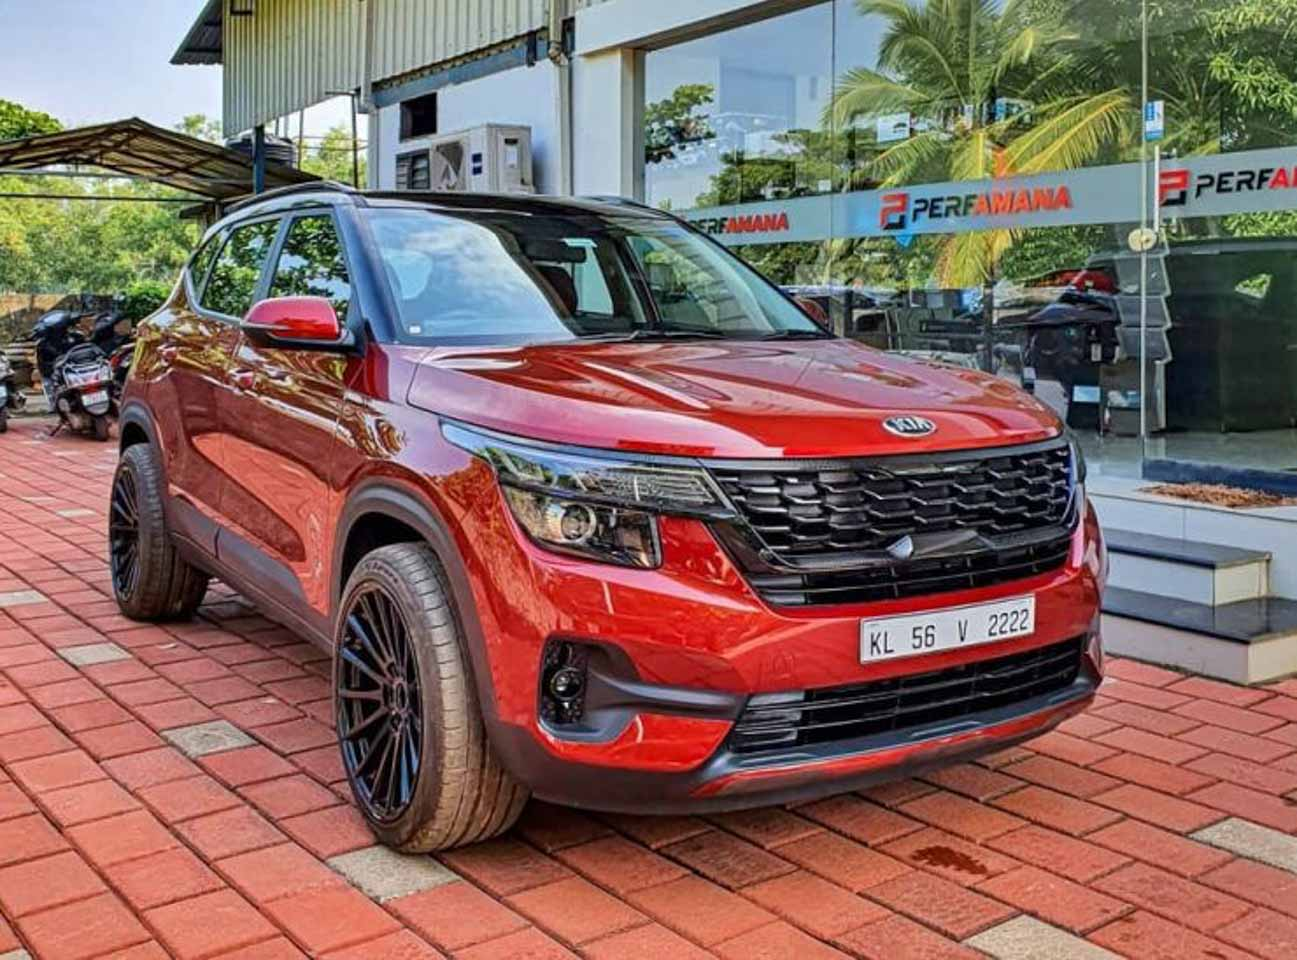 Sales Analysis Of Newly Launched Cars In 2019 - Harrier To Seltos - GaadiWaadi.com thumbnail